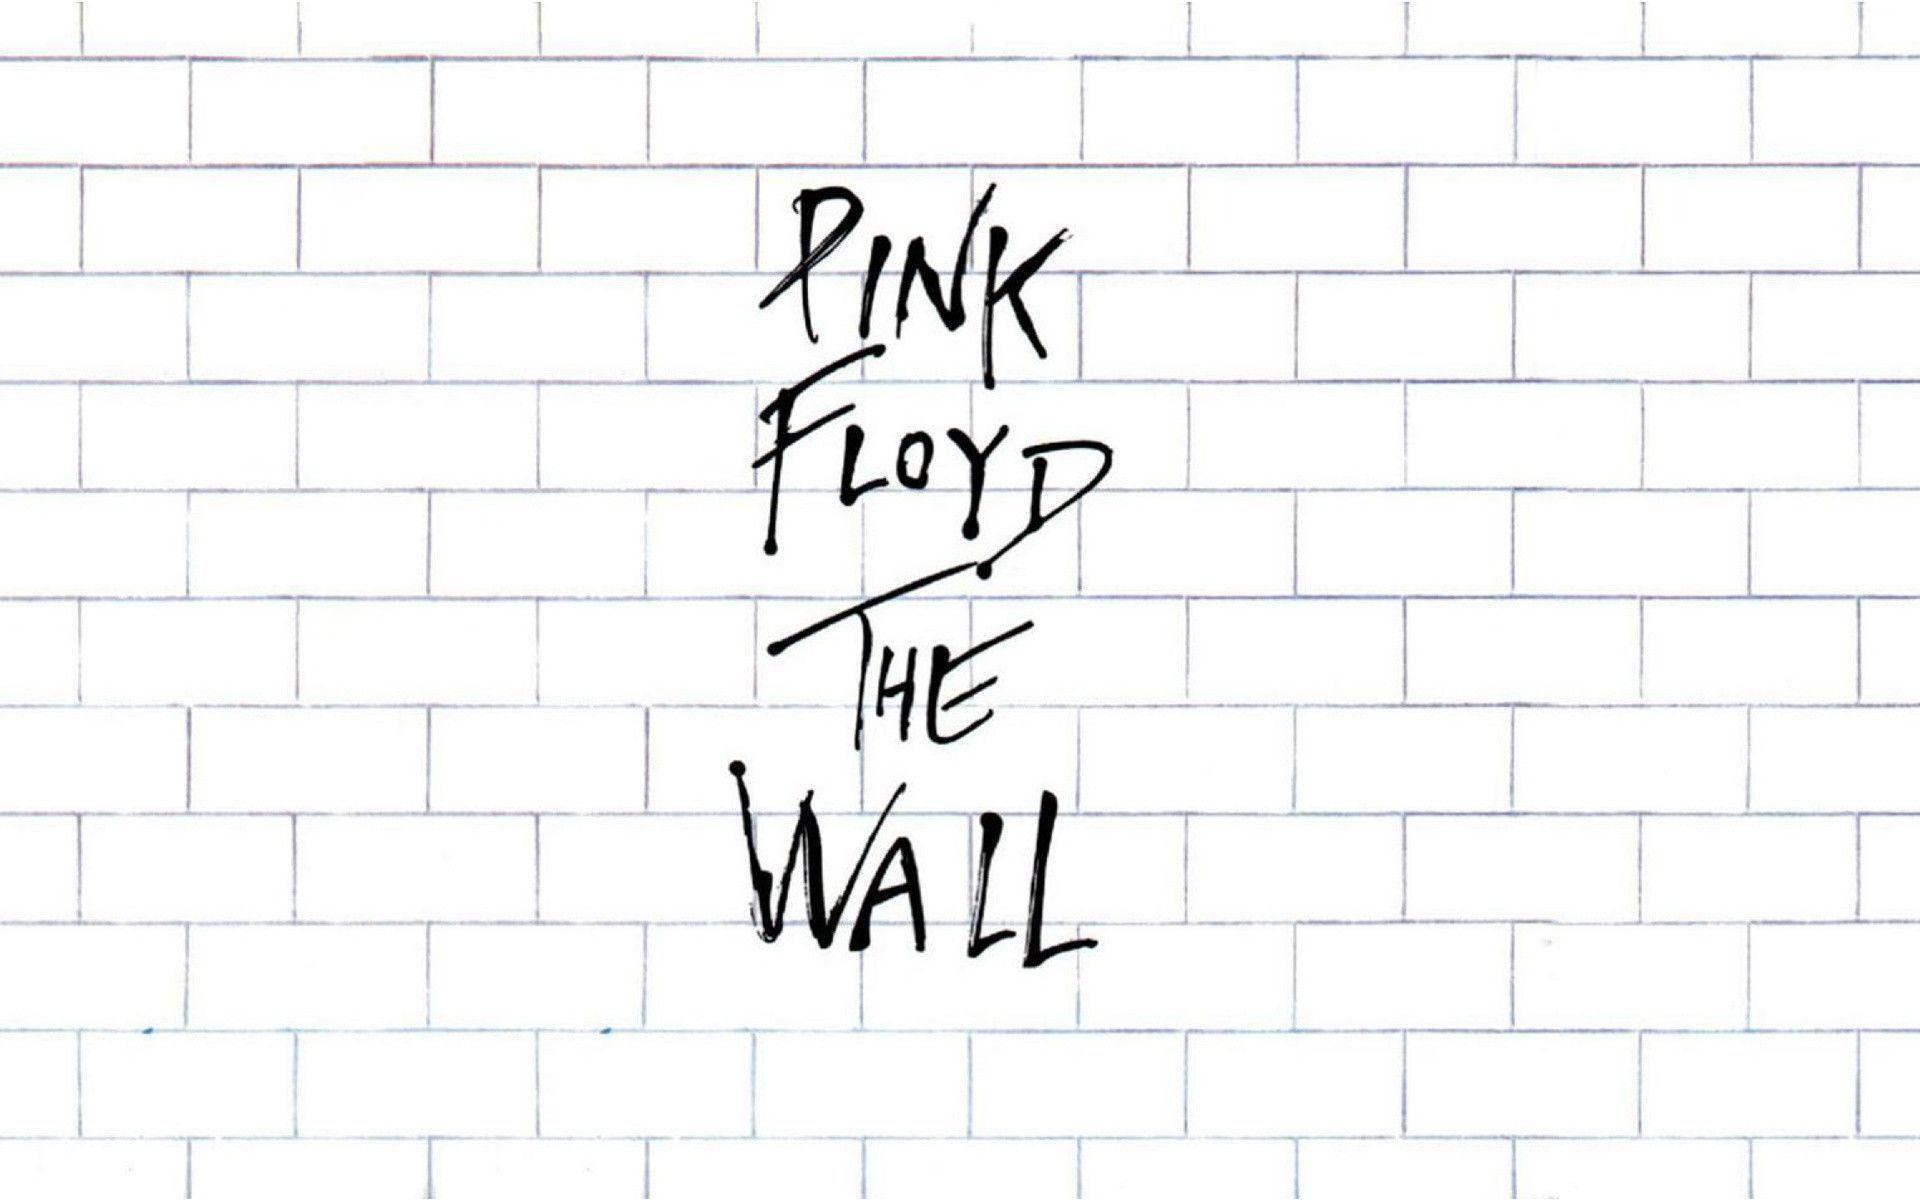 Free pink floyd wallpapers wallpaper cave Wallpapers for the wall